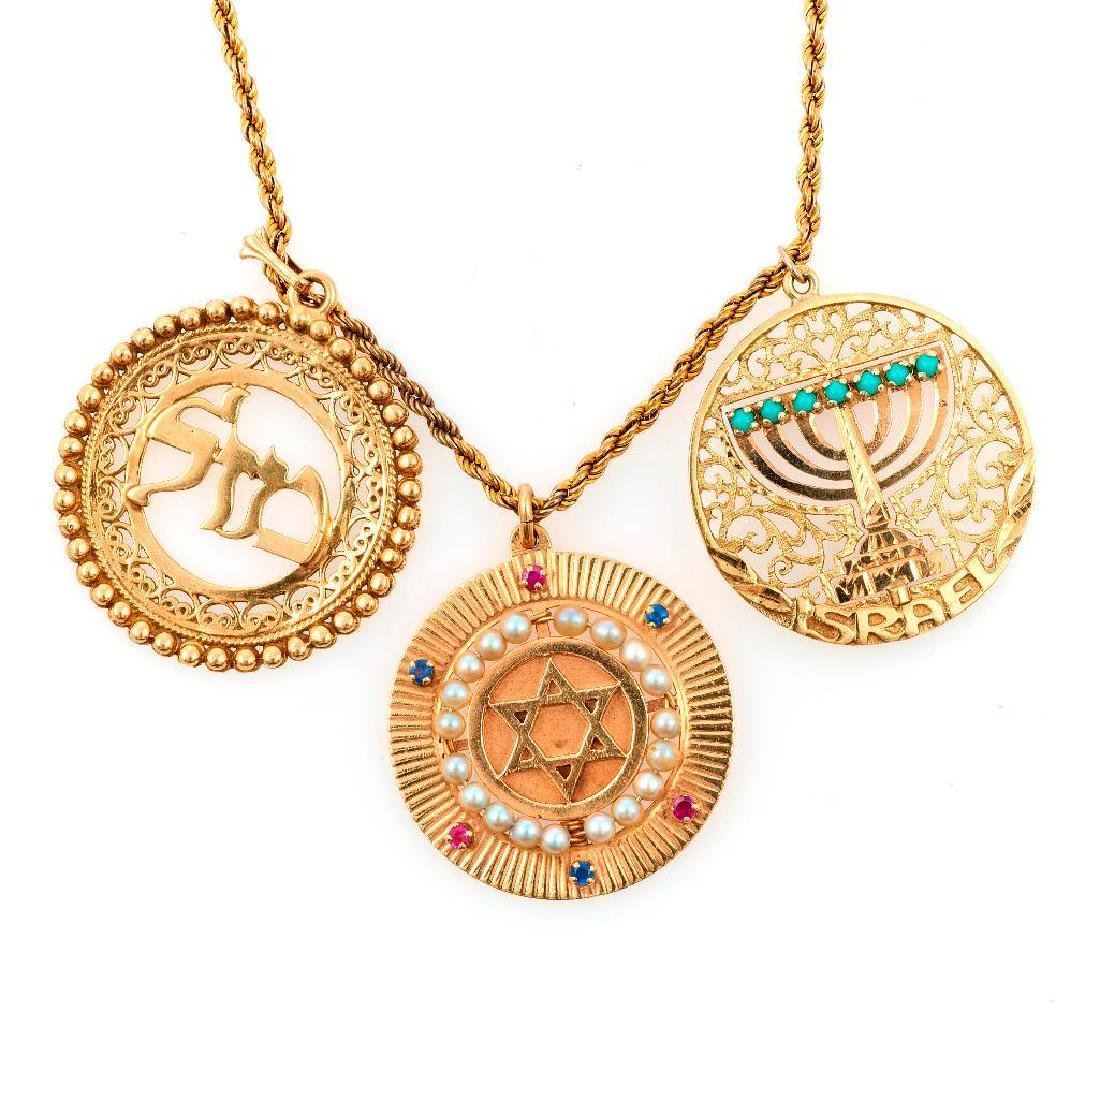 Judaica charm pendant-necklace